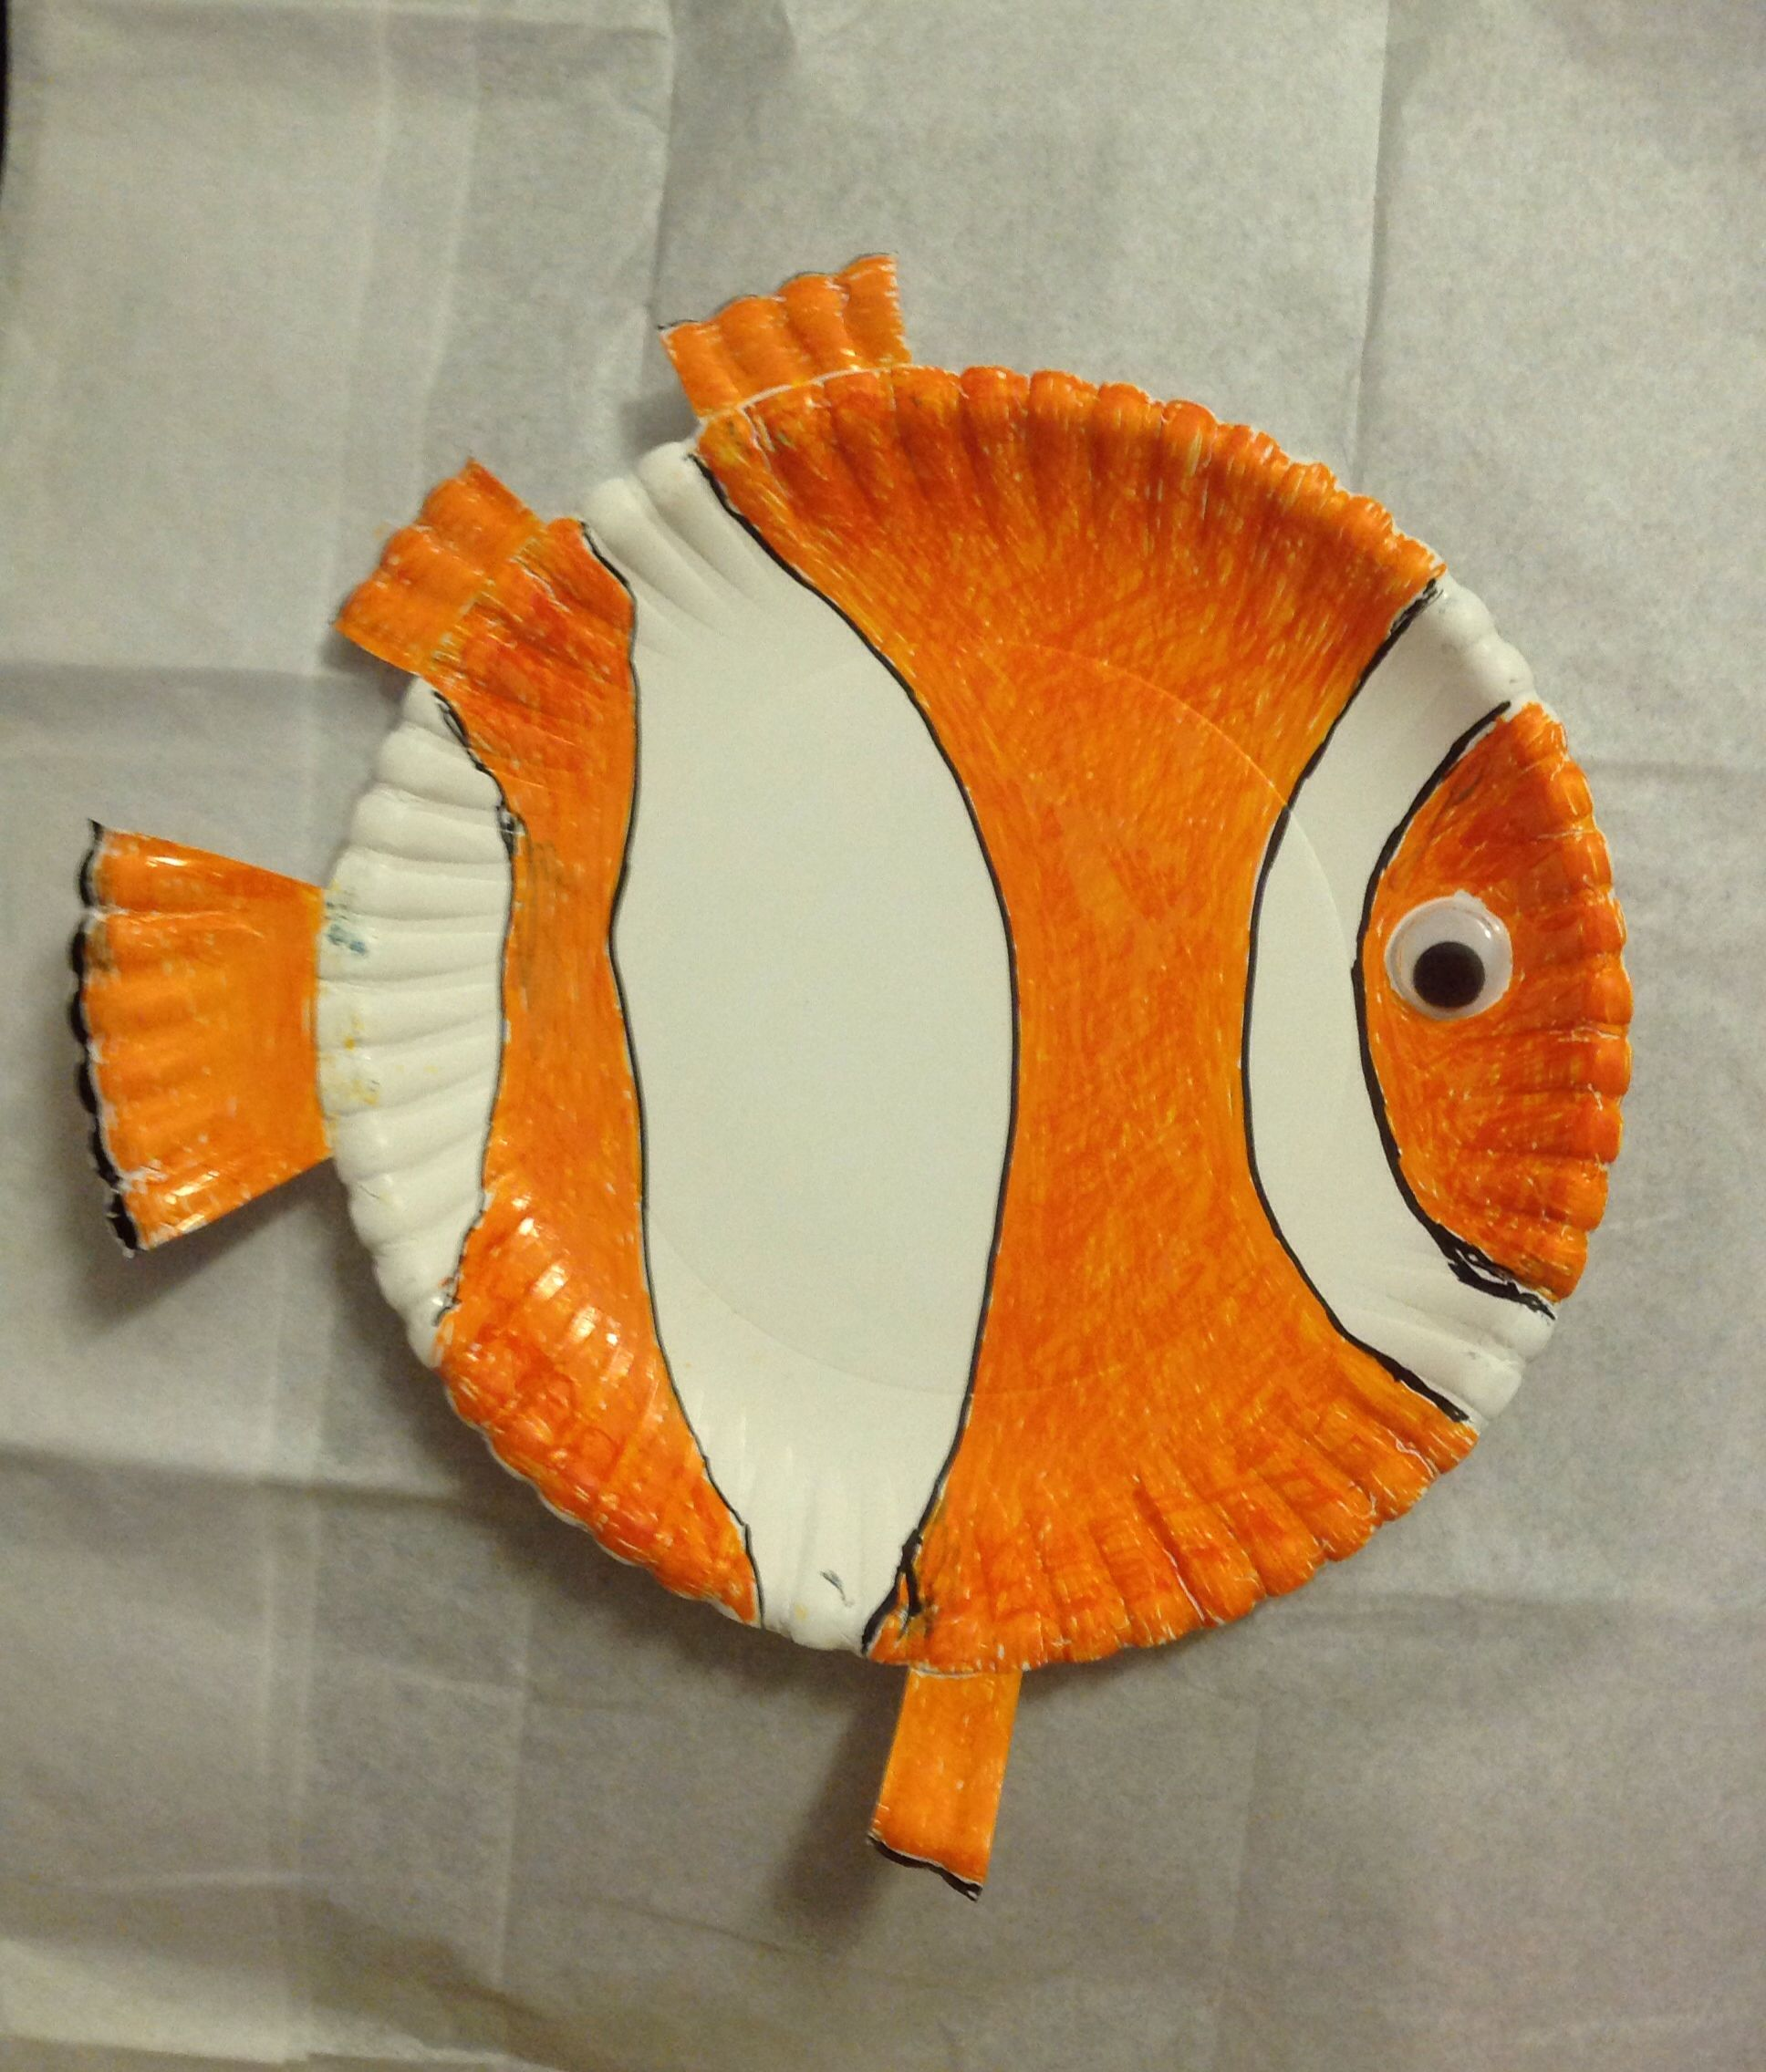 Finding nemo using paper plate easy crafts for kids for Finding dory crafts for preschoolers